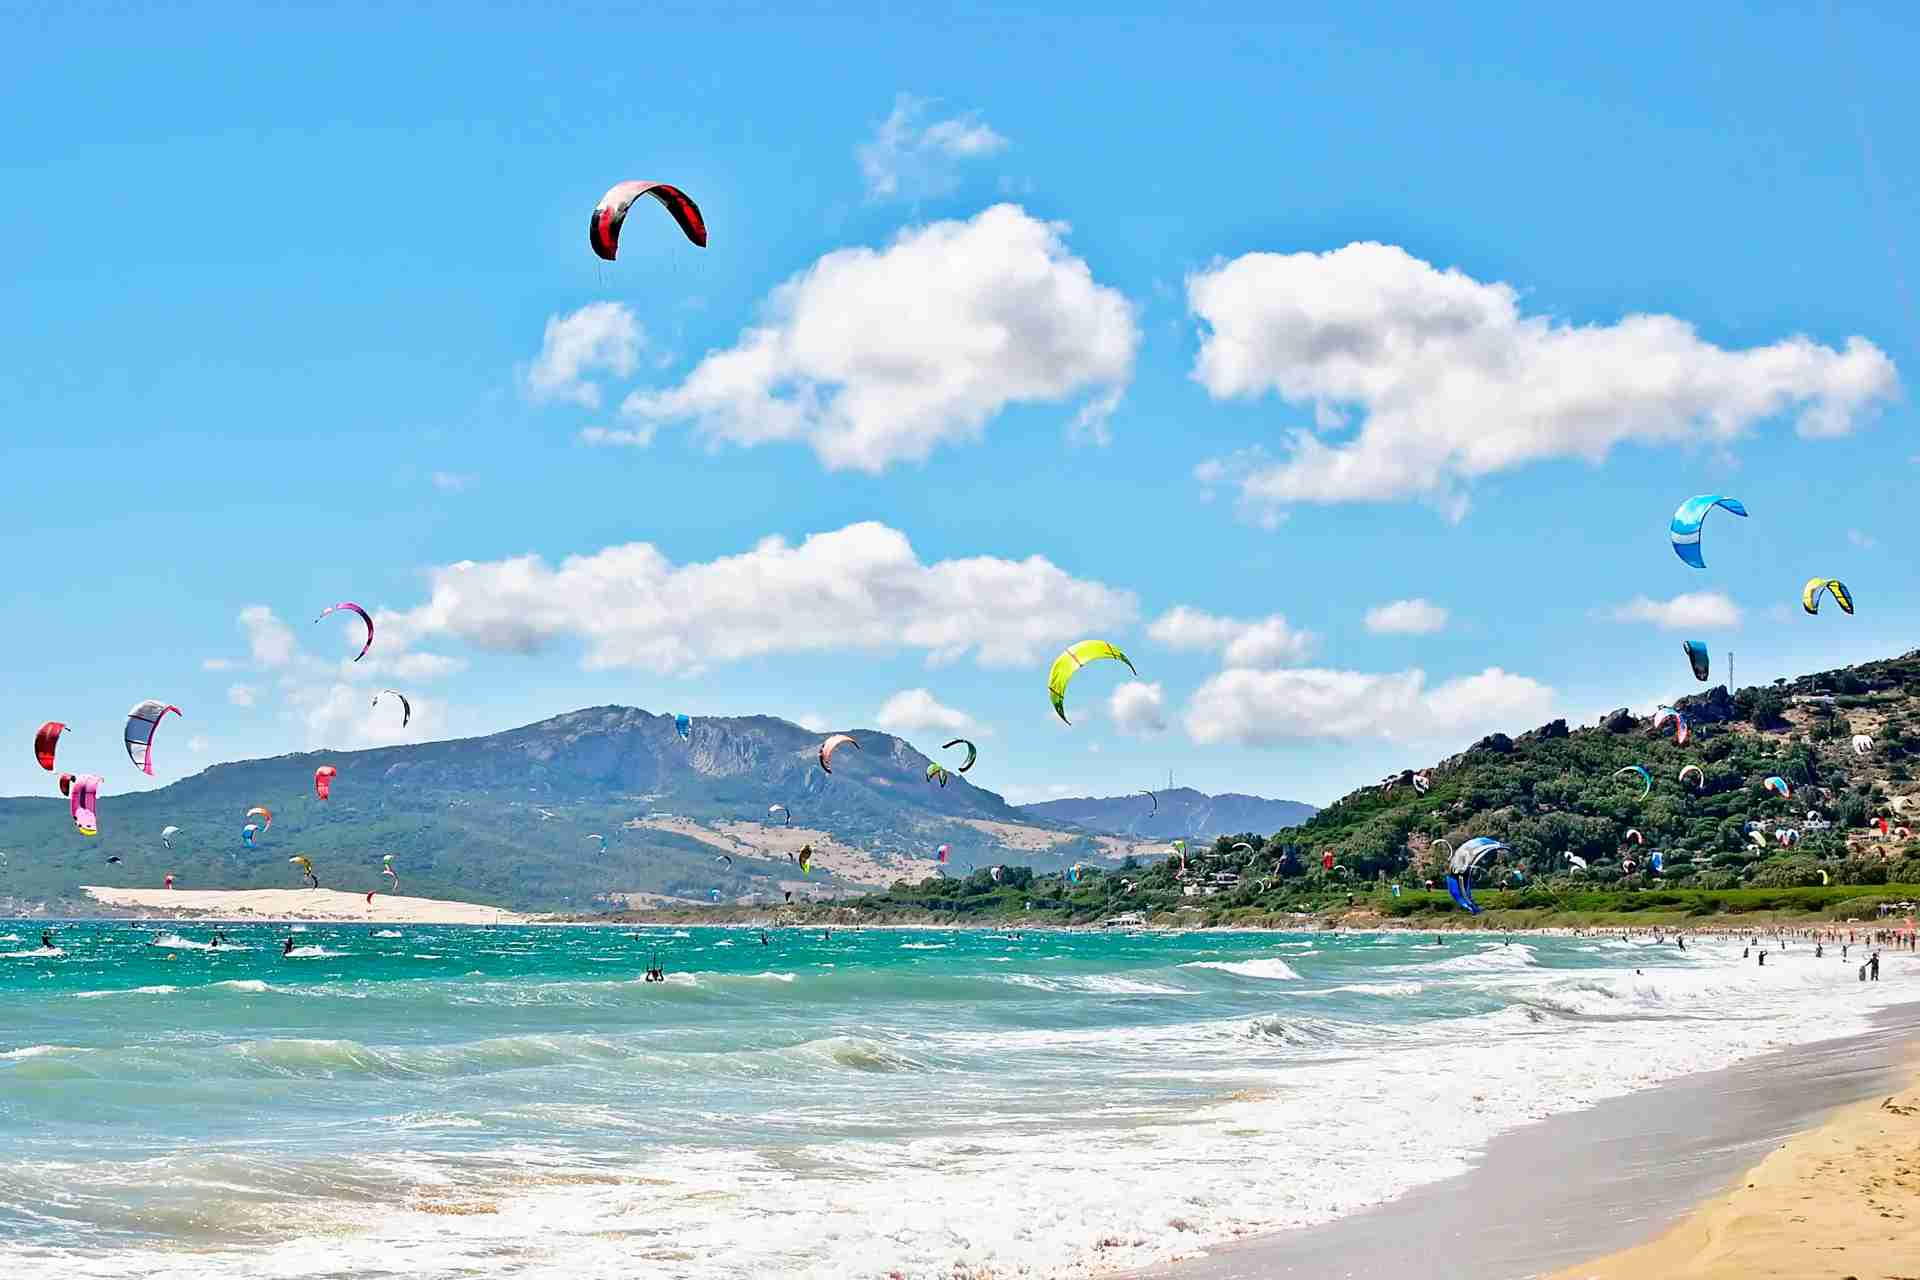 Tarifa beach in Spain. (Photo by Bogdan Angheloiu/Getty Images)